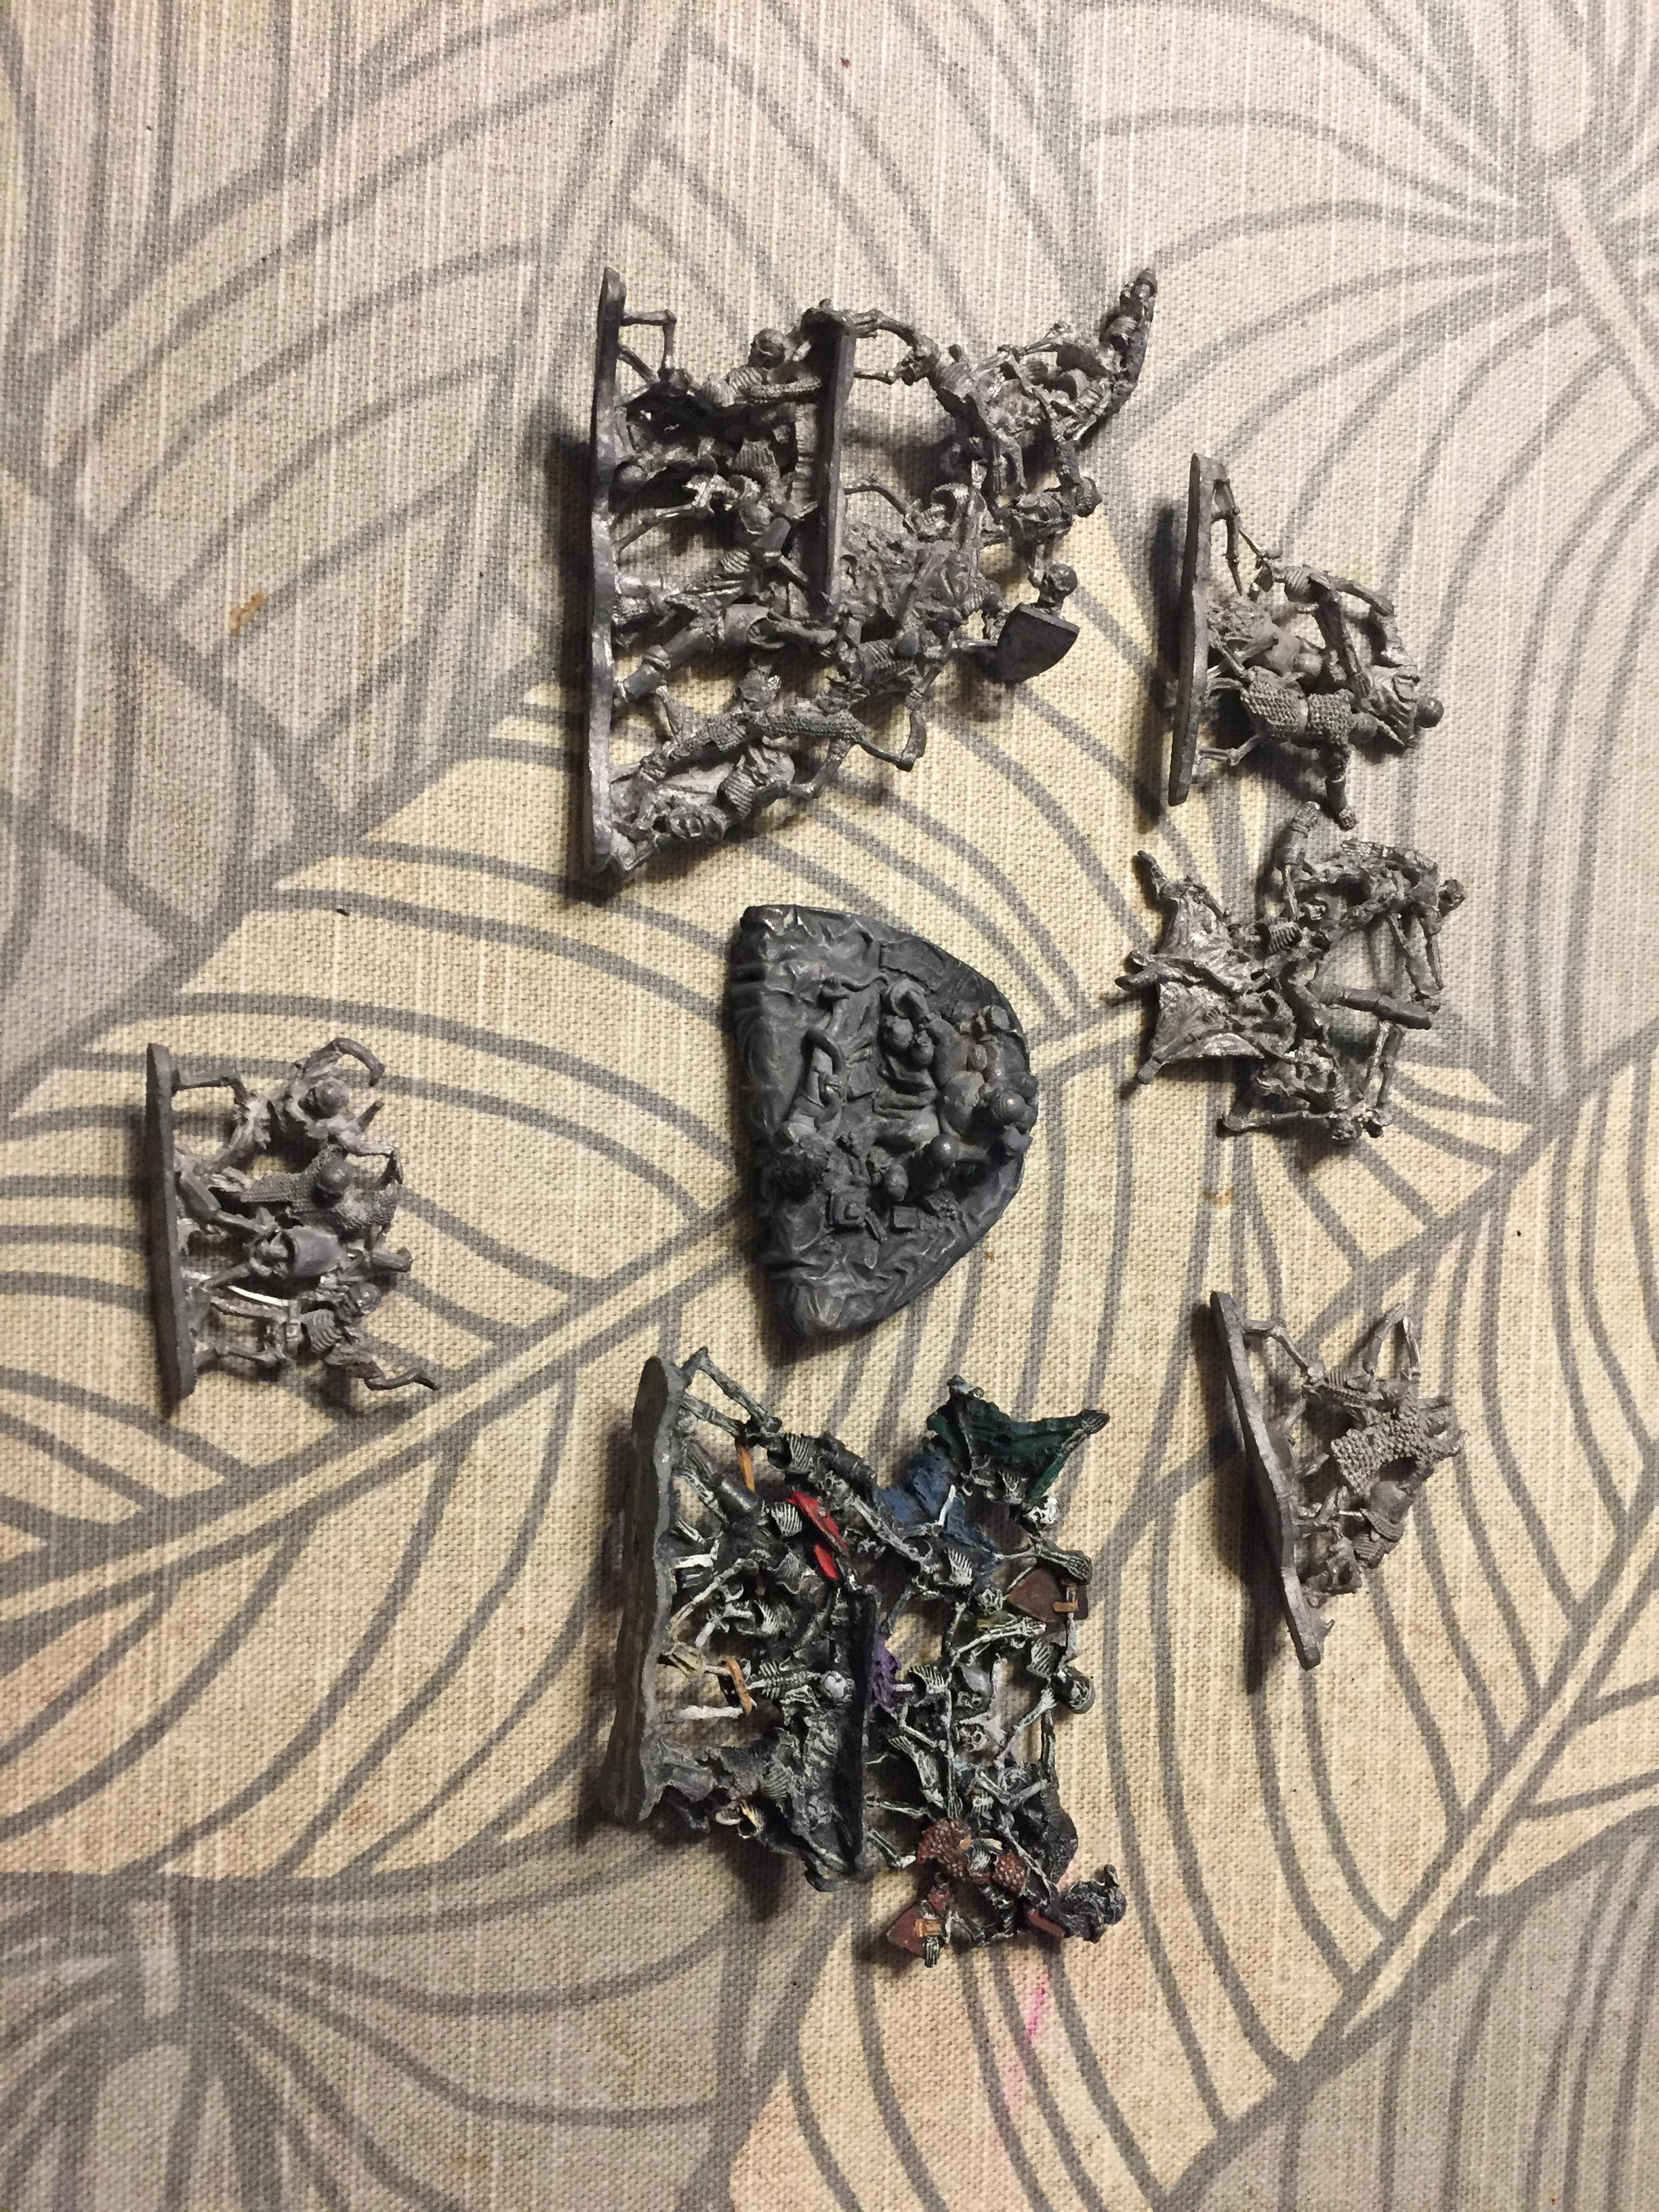 Bone, Necromancer, Out Of Production, Ral Partha, Skeletons, Throne, Throne Of Bone, Undead